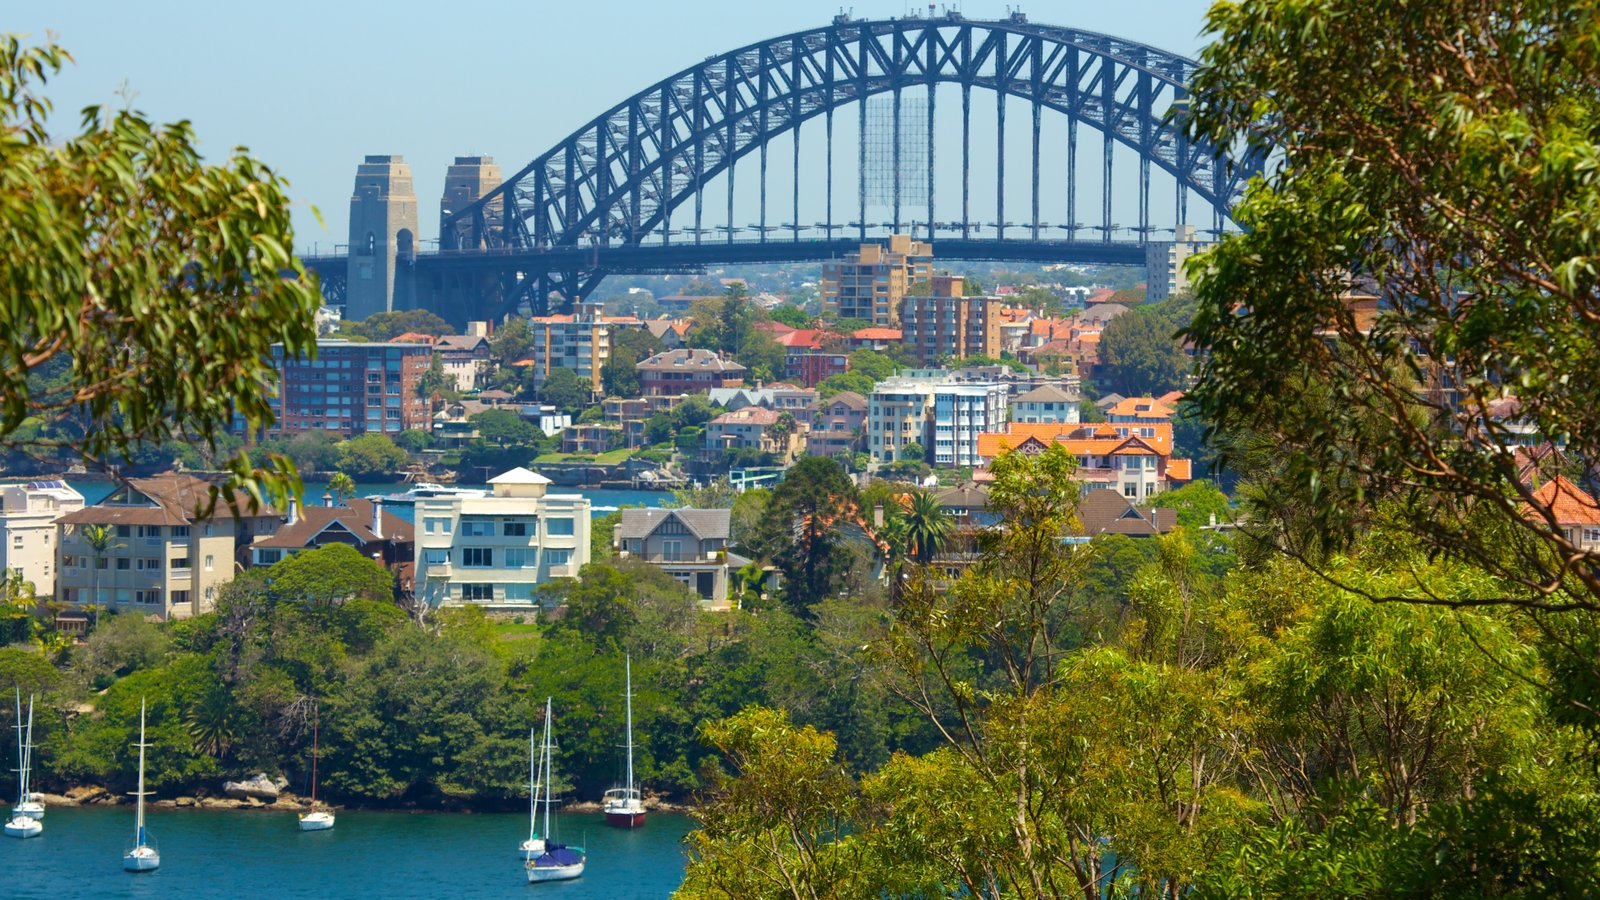 Sydney featuring a bay or harbor, a bridge and a city